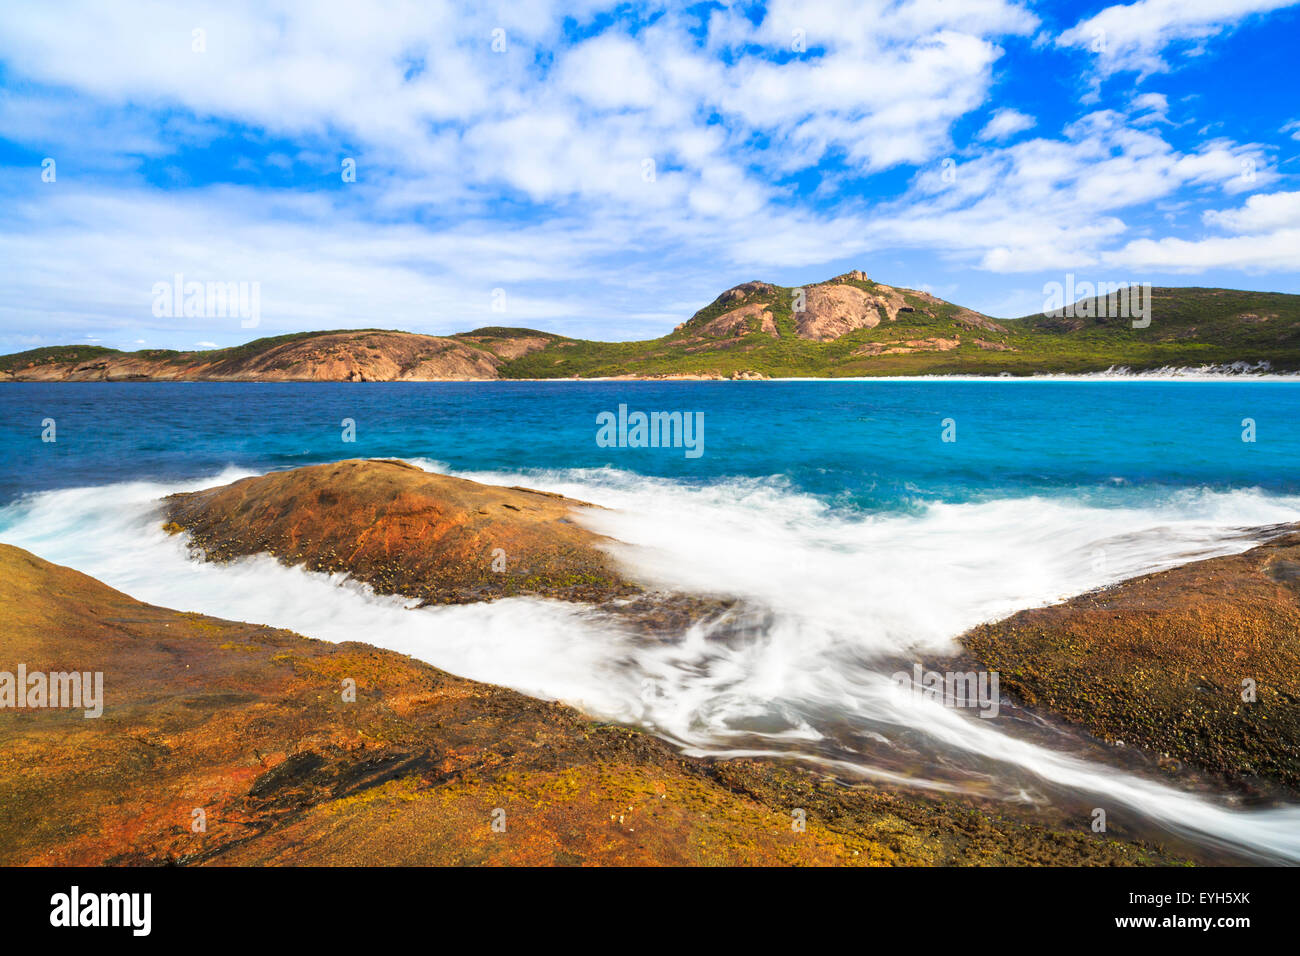 A wave pouring over granite rocks at Thistle Cove in Cape Le Grand National Park, near Esperance, Western Australia - Stock Image